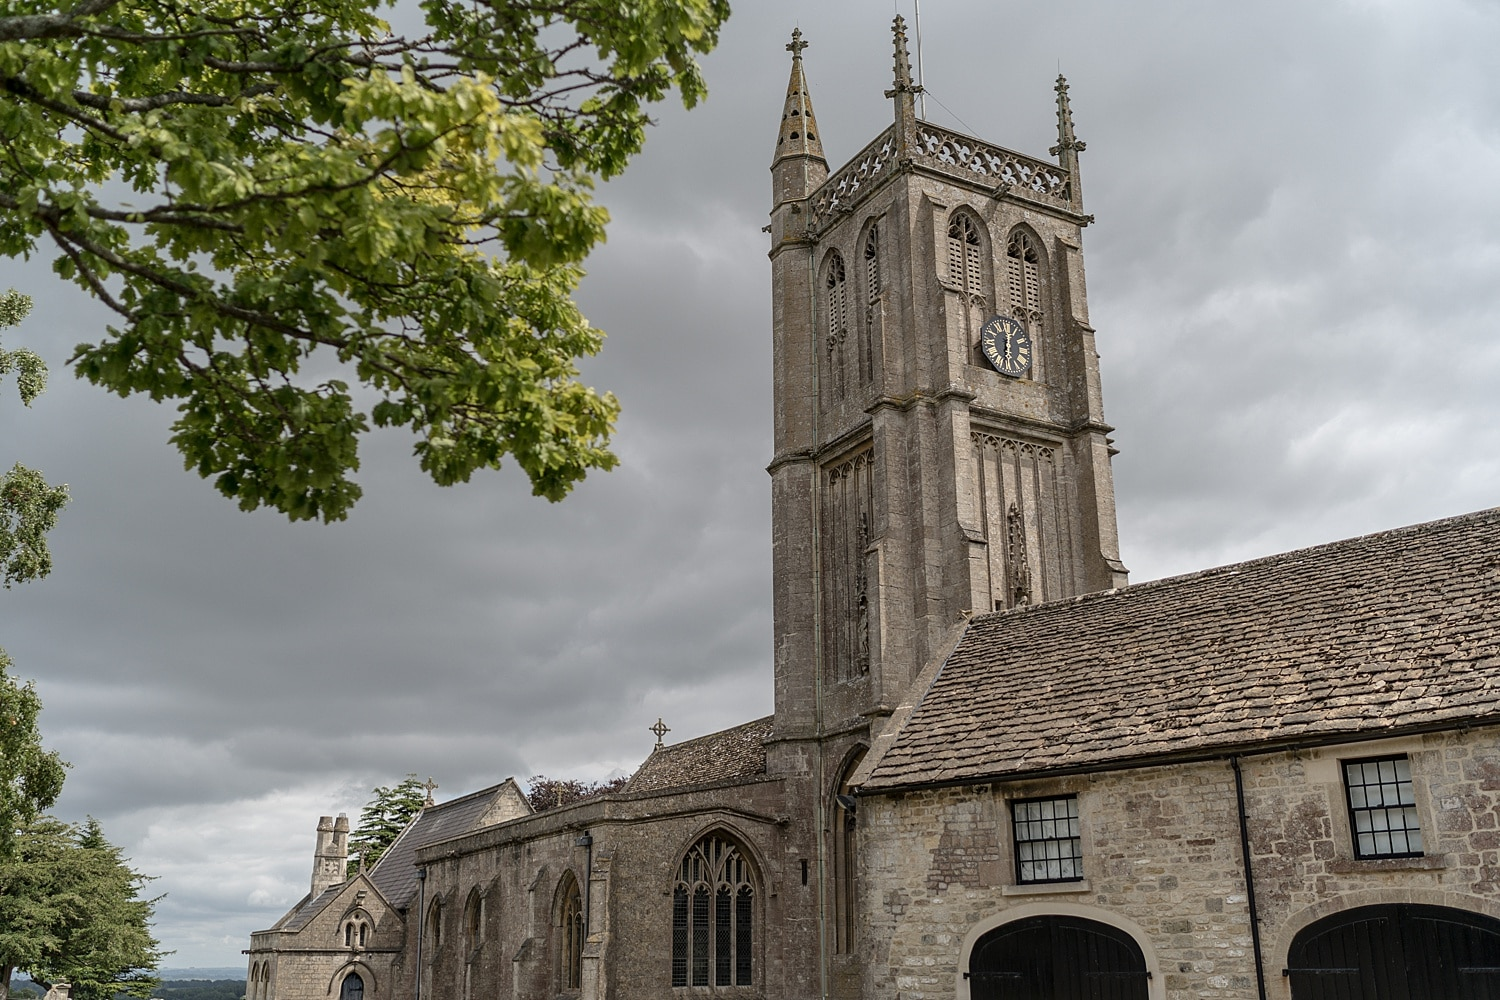 St Johns the Baptist Church in Colerne